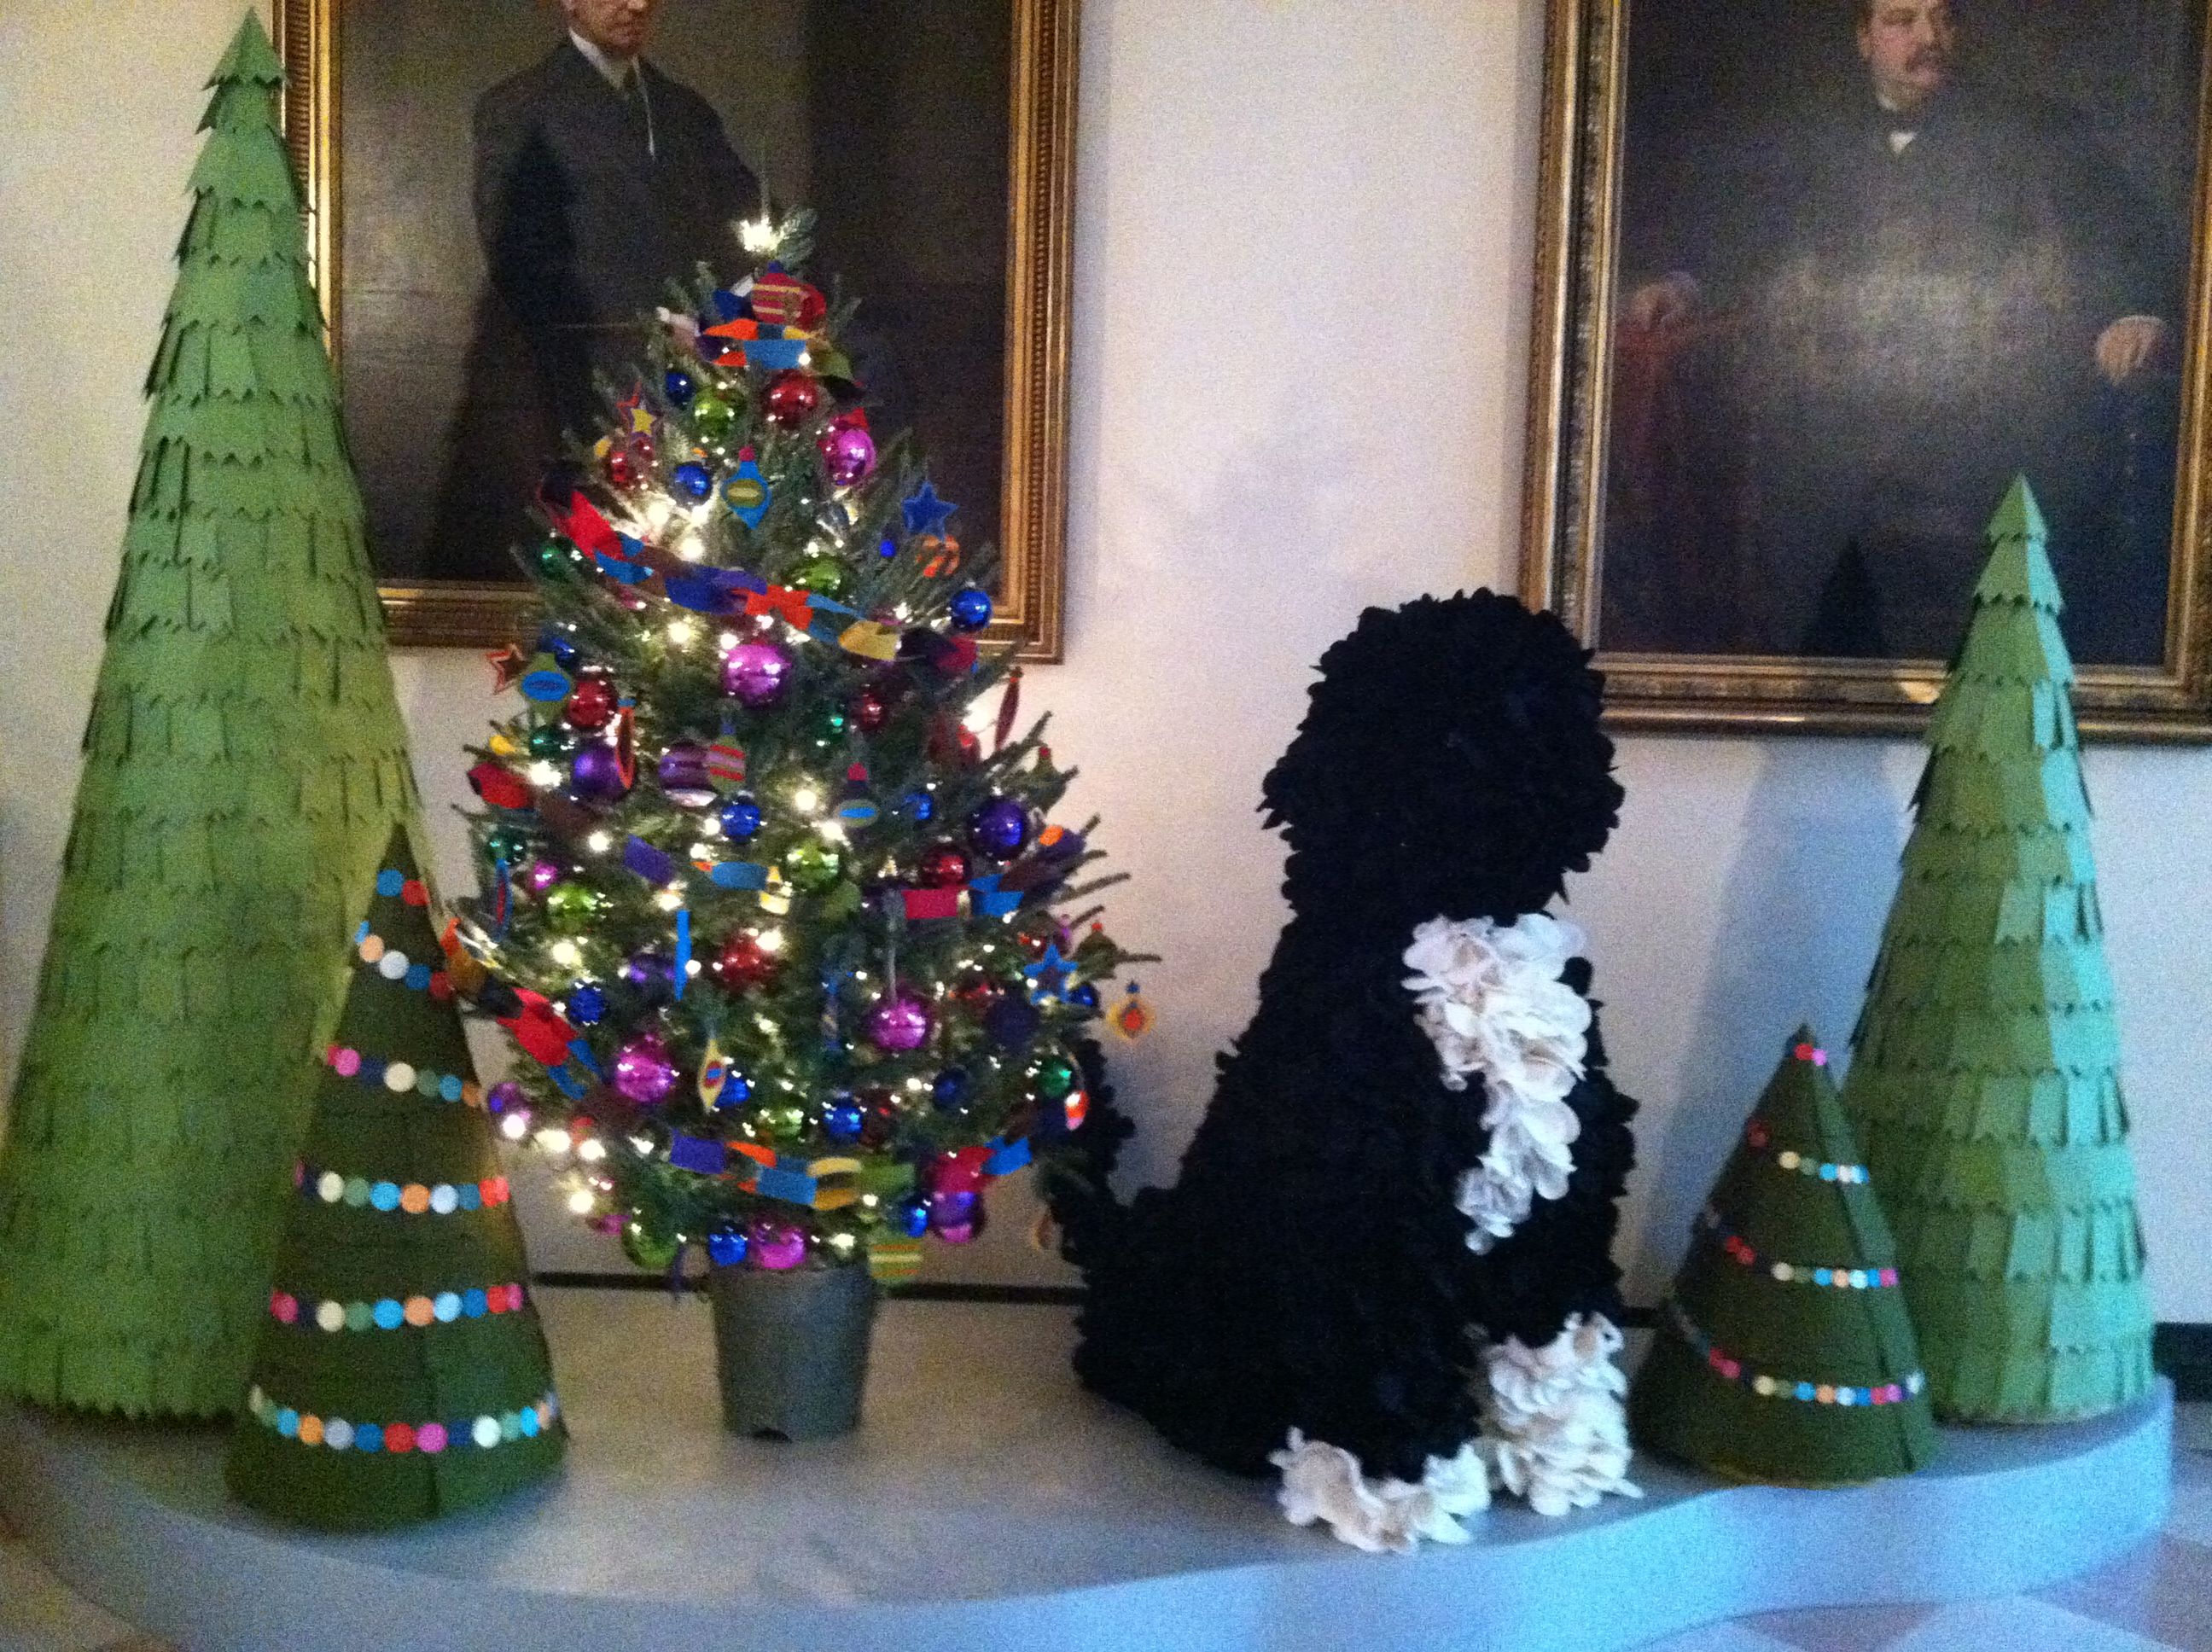 decorating the white house for christmas-part 1 – the garden diaries